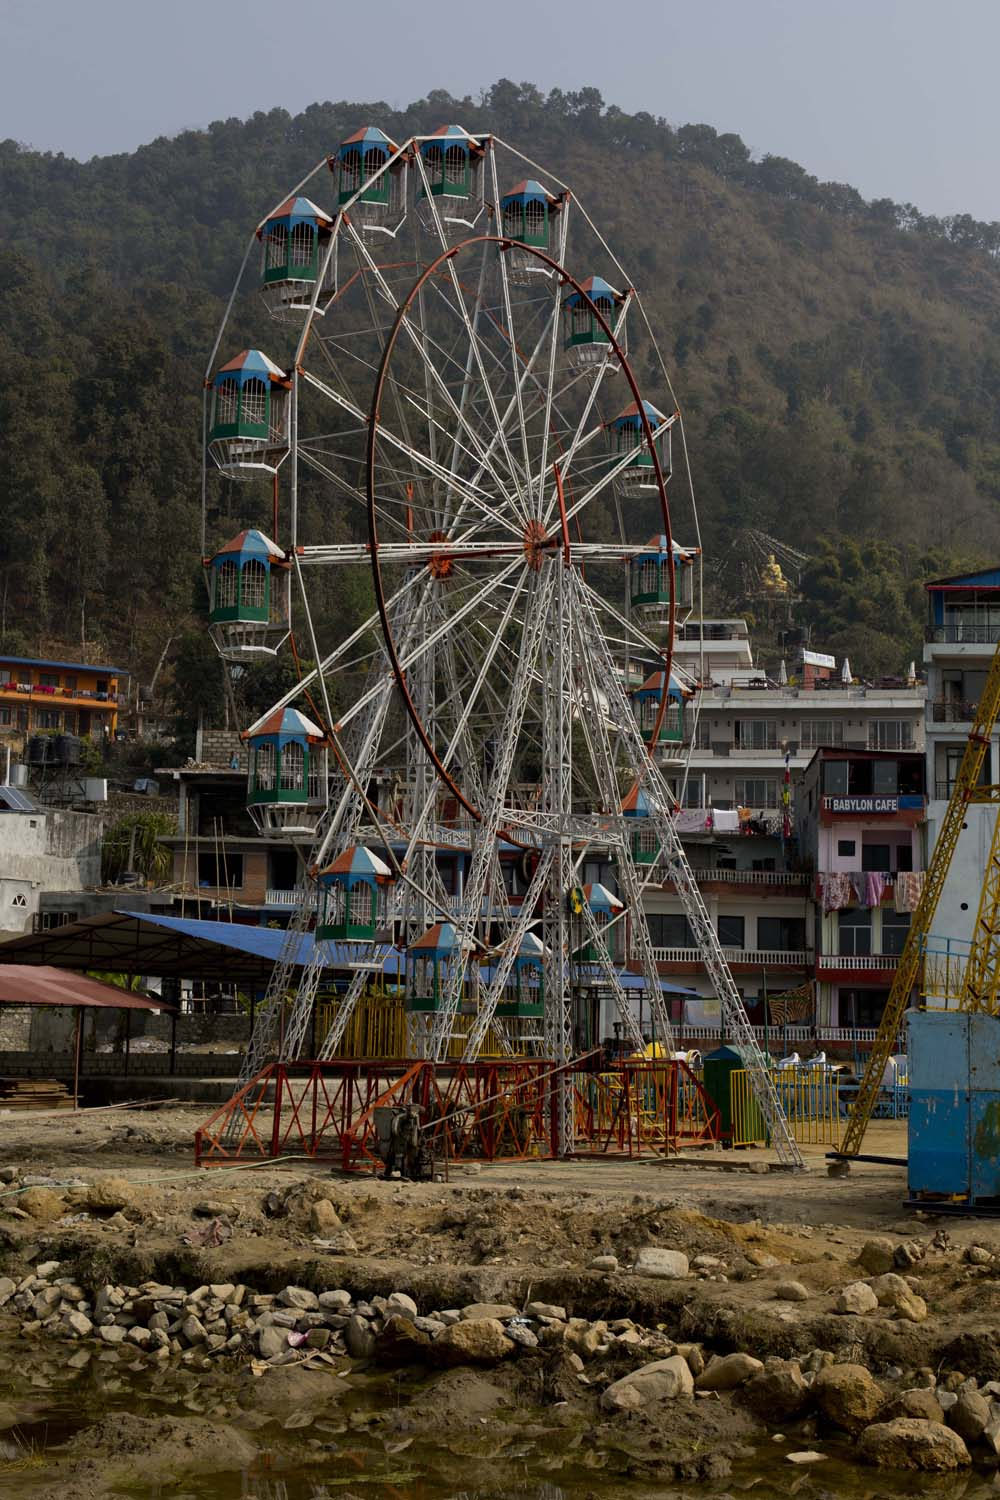 Ferrywheel on moorish grounds - not a good idea, Pokhara Nepal